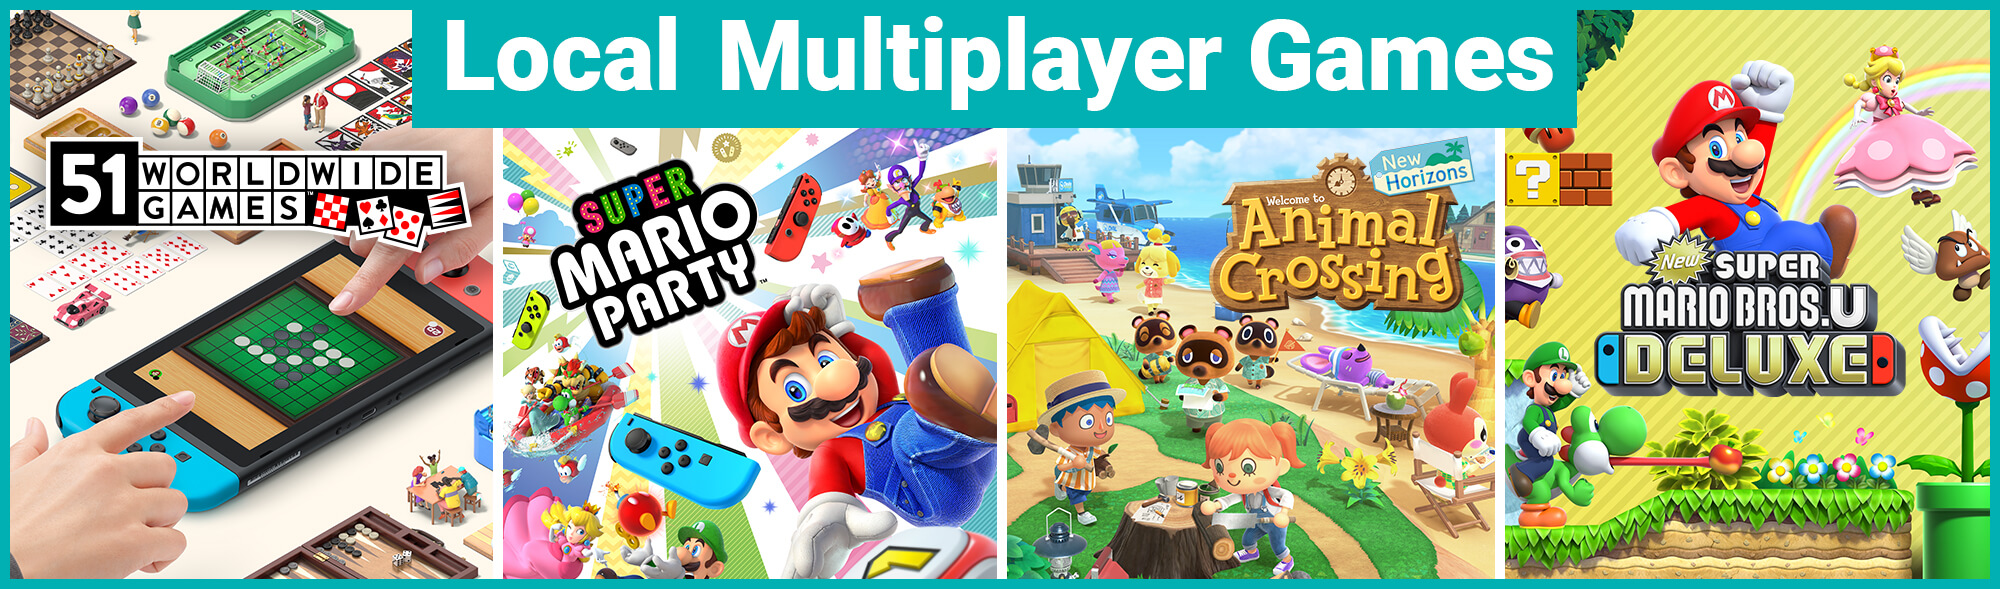 Local Multiplayer Games Hub